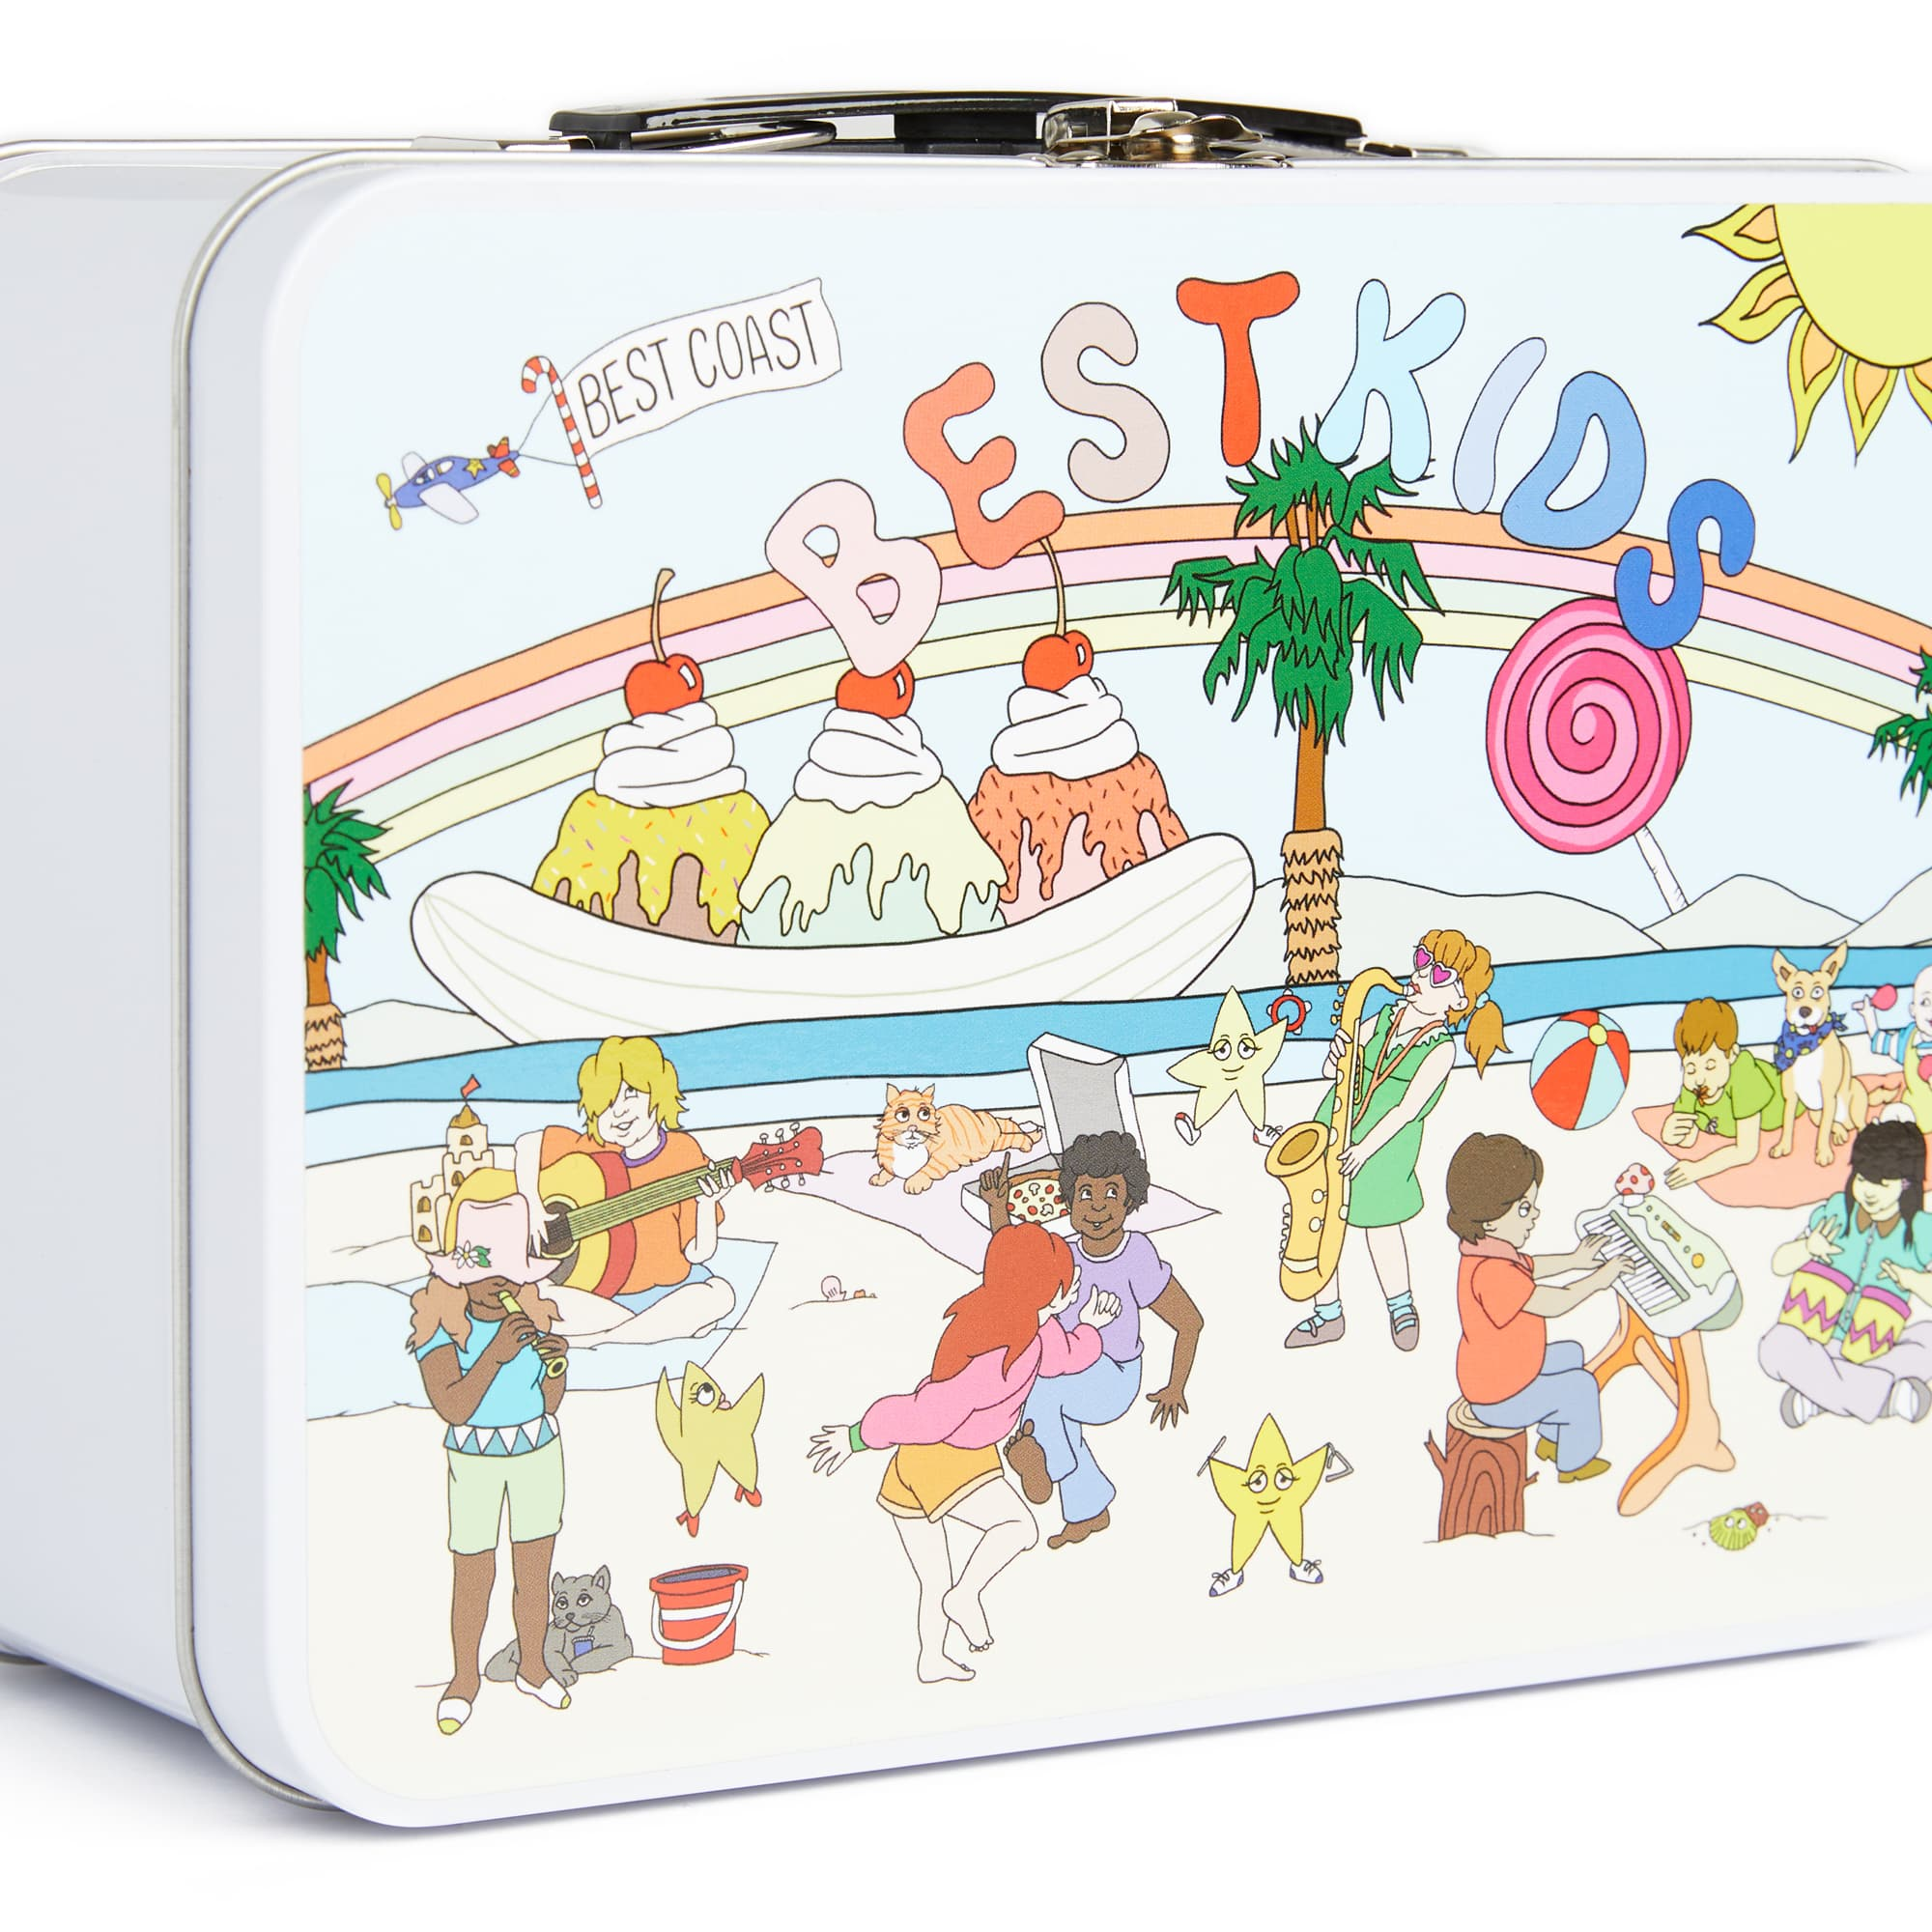 Best Coast 'Best Kids' Lunch Box